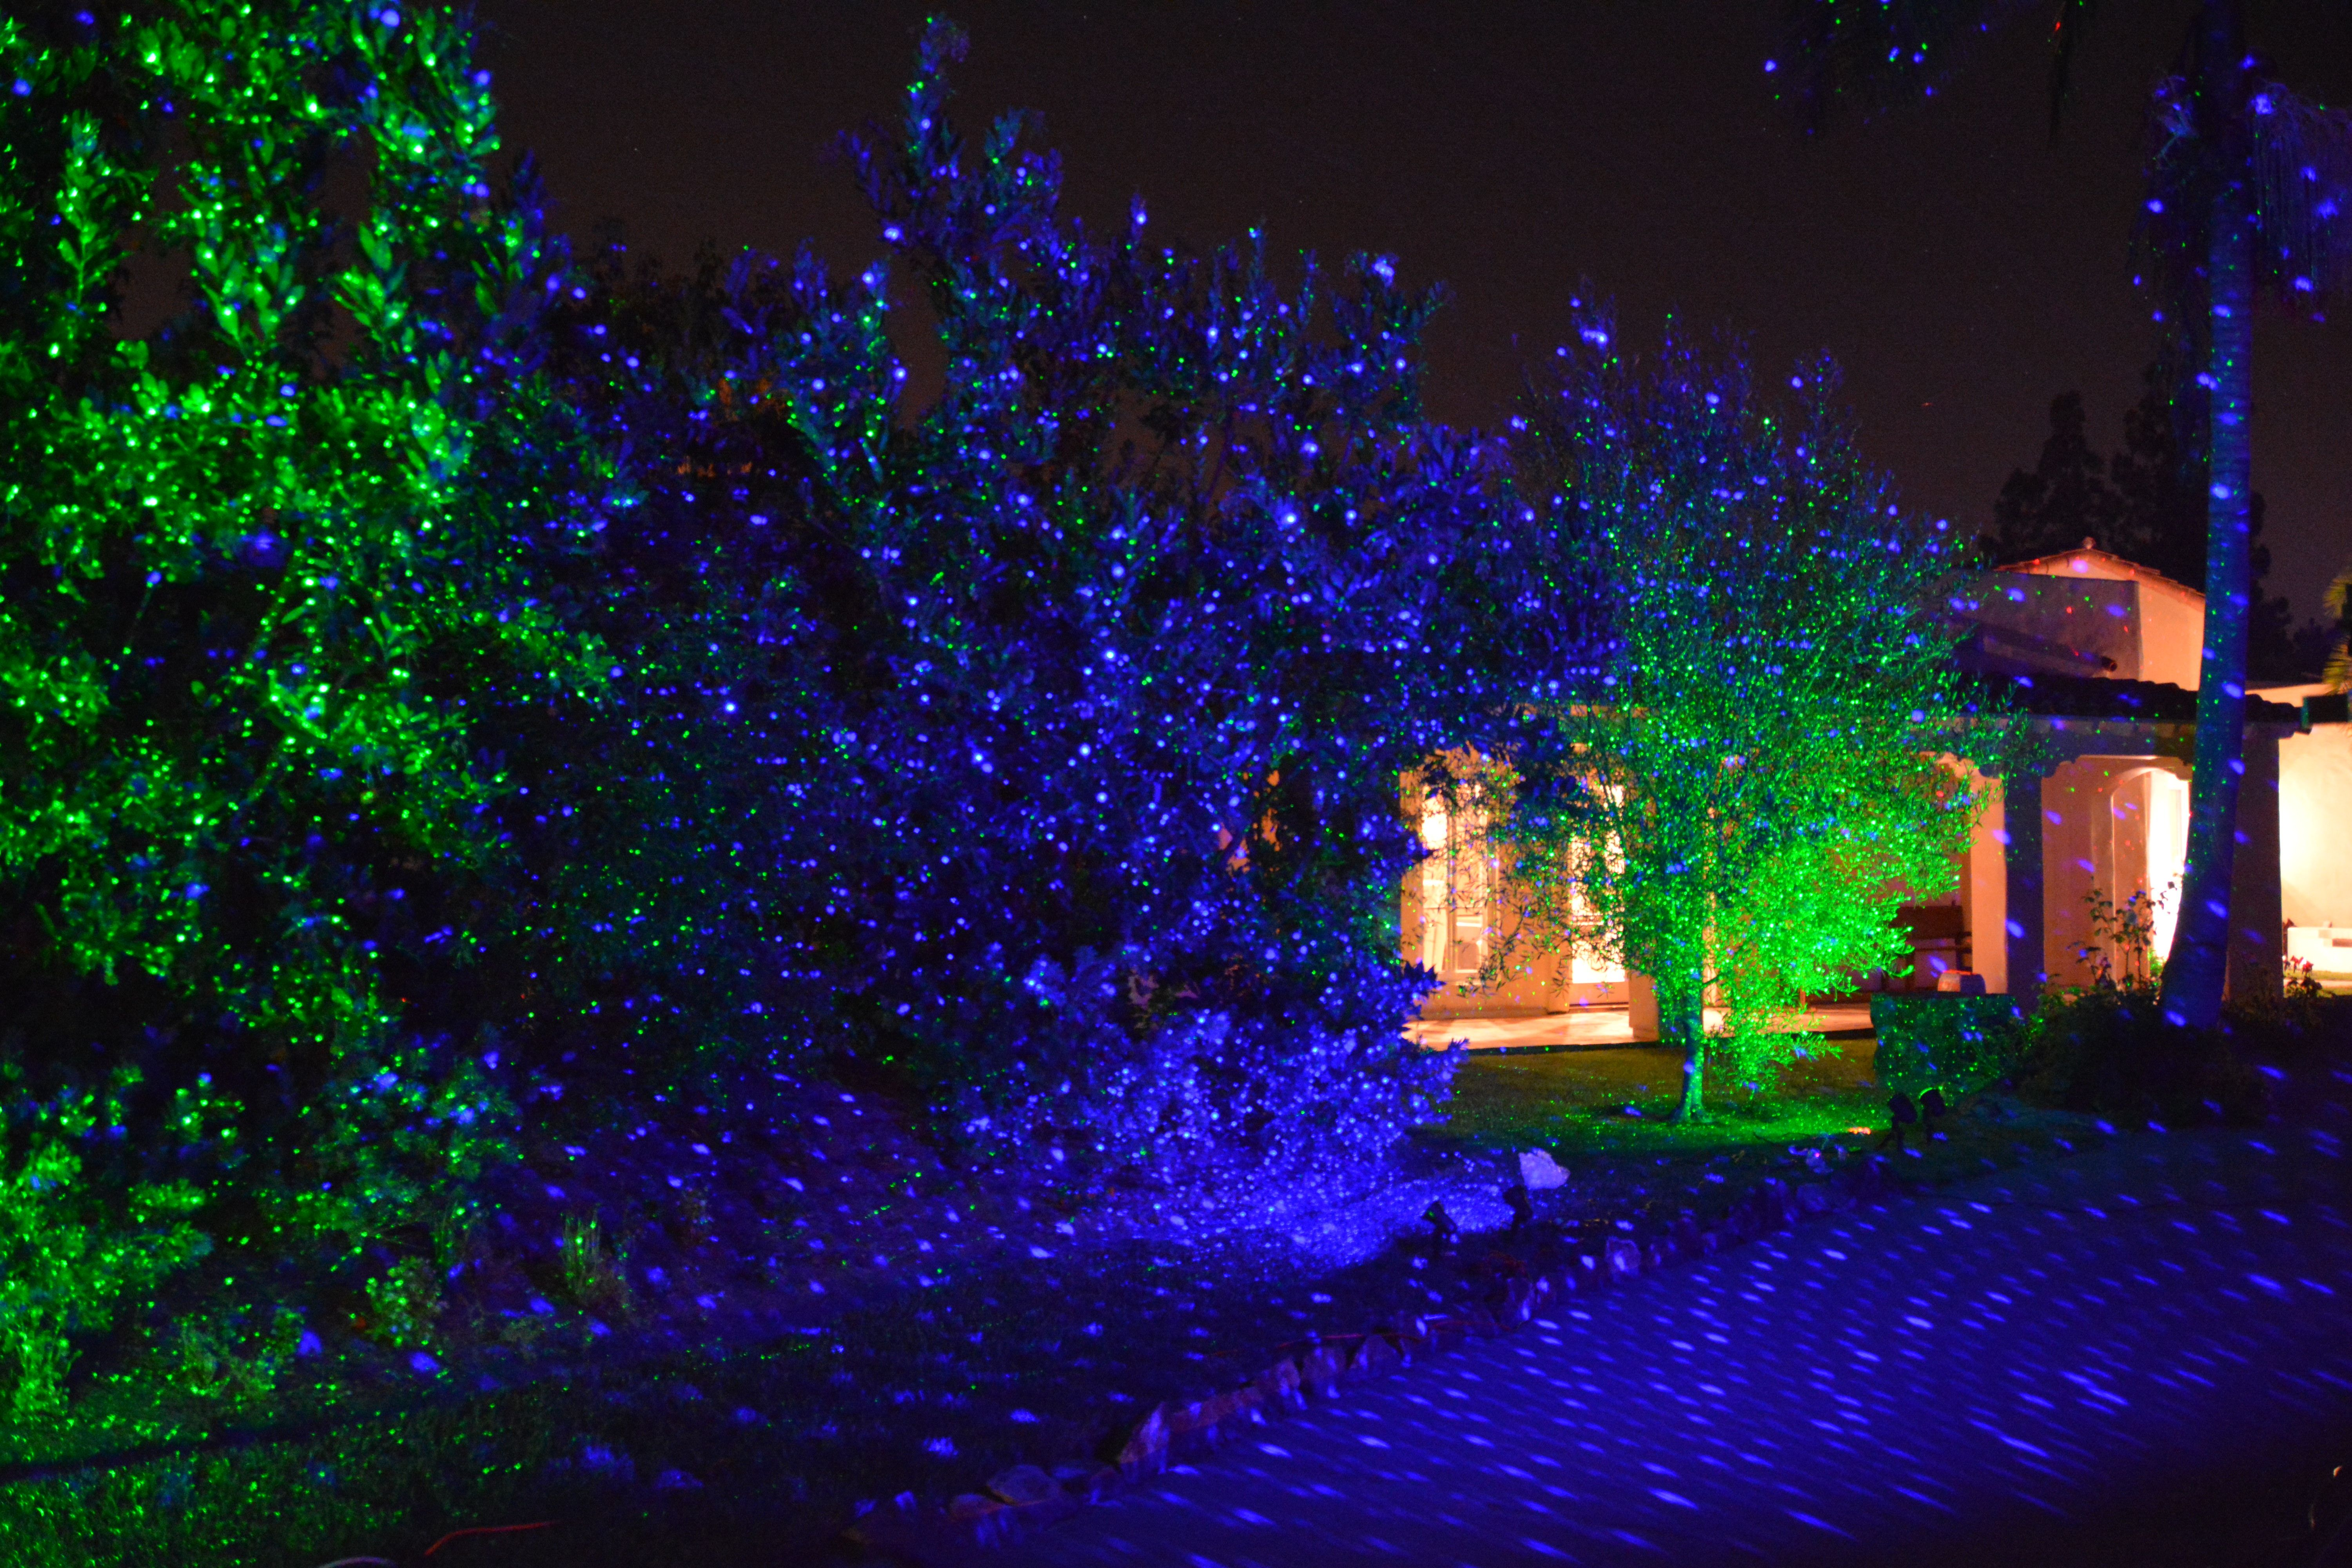 Turn Your Back Yard Into An Oasis Of Light With The Blisslights Spri Holiday Lights Outdoor Laser Christmas Lights Projectors Outdoor Christmas Light Projector